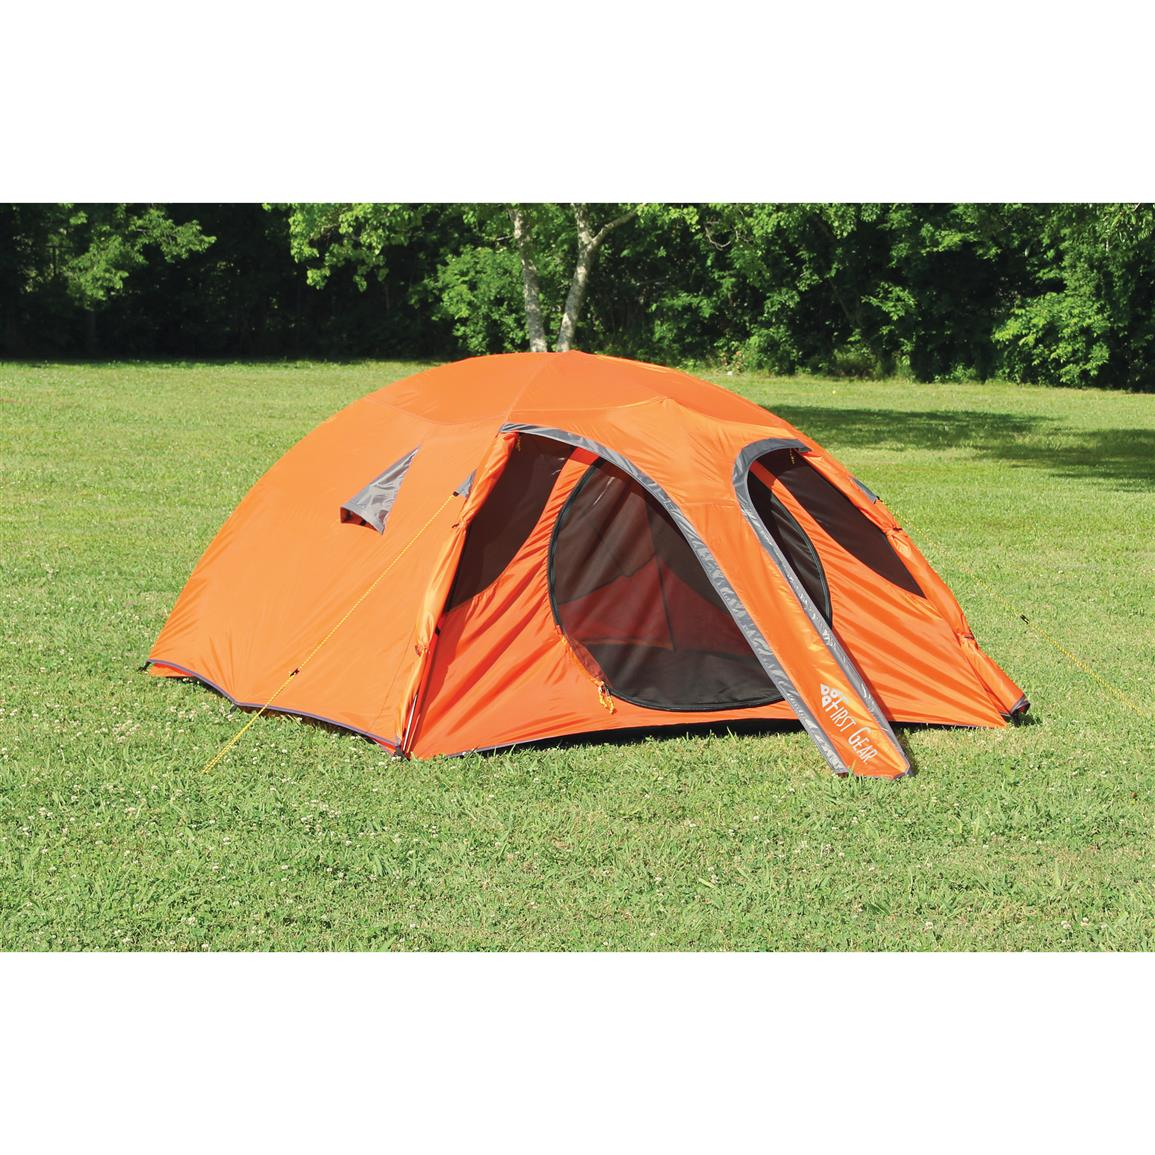 Texsports Orange Mountain Tent, 3 Person • with Full rainfly